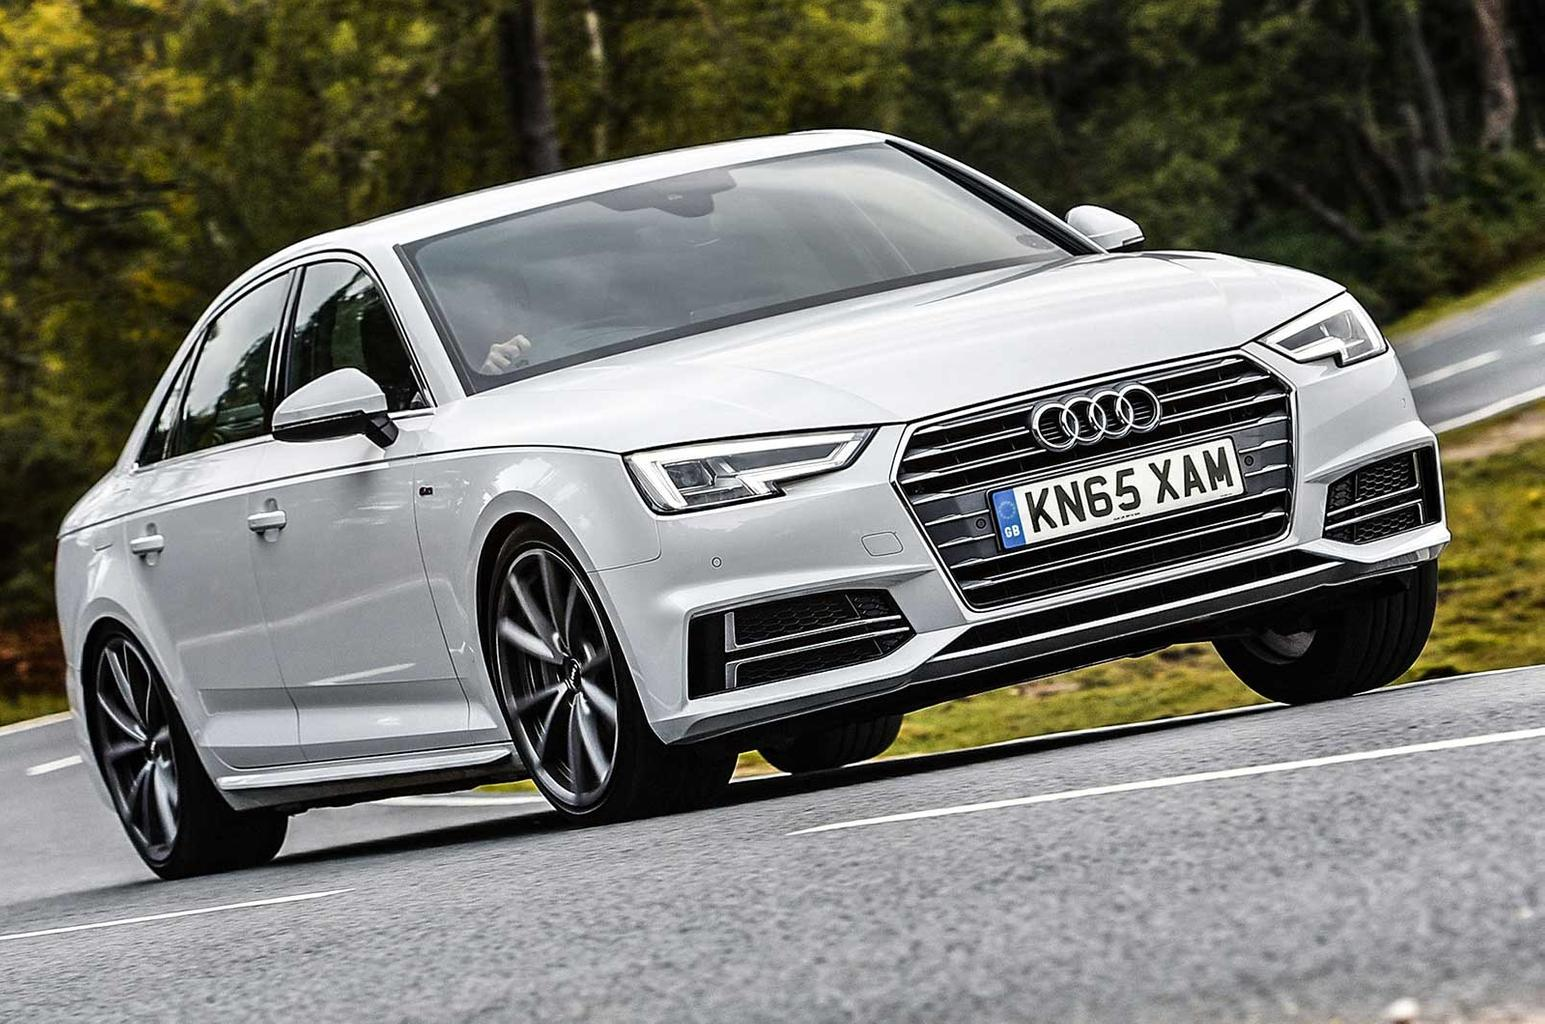 New car deal of the day: Audi A4